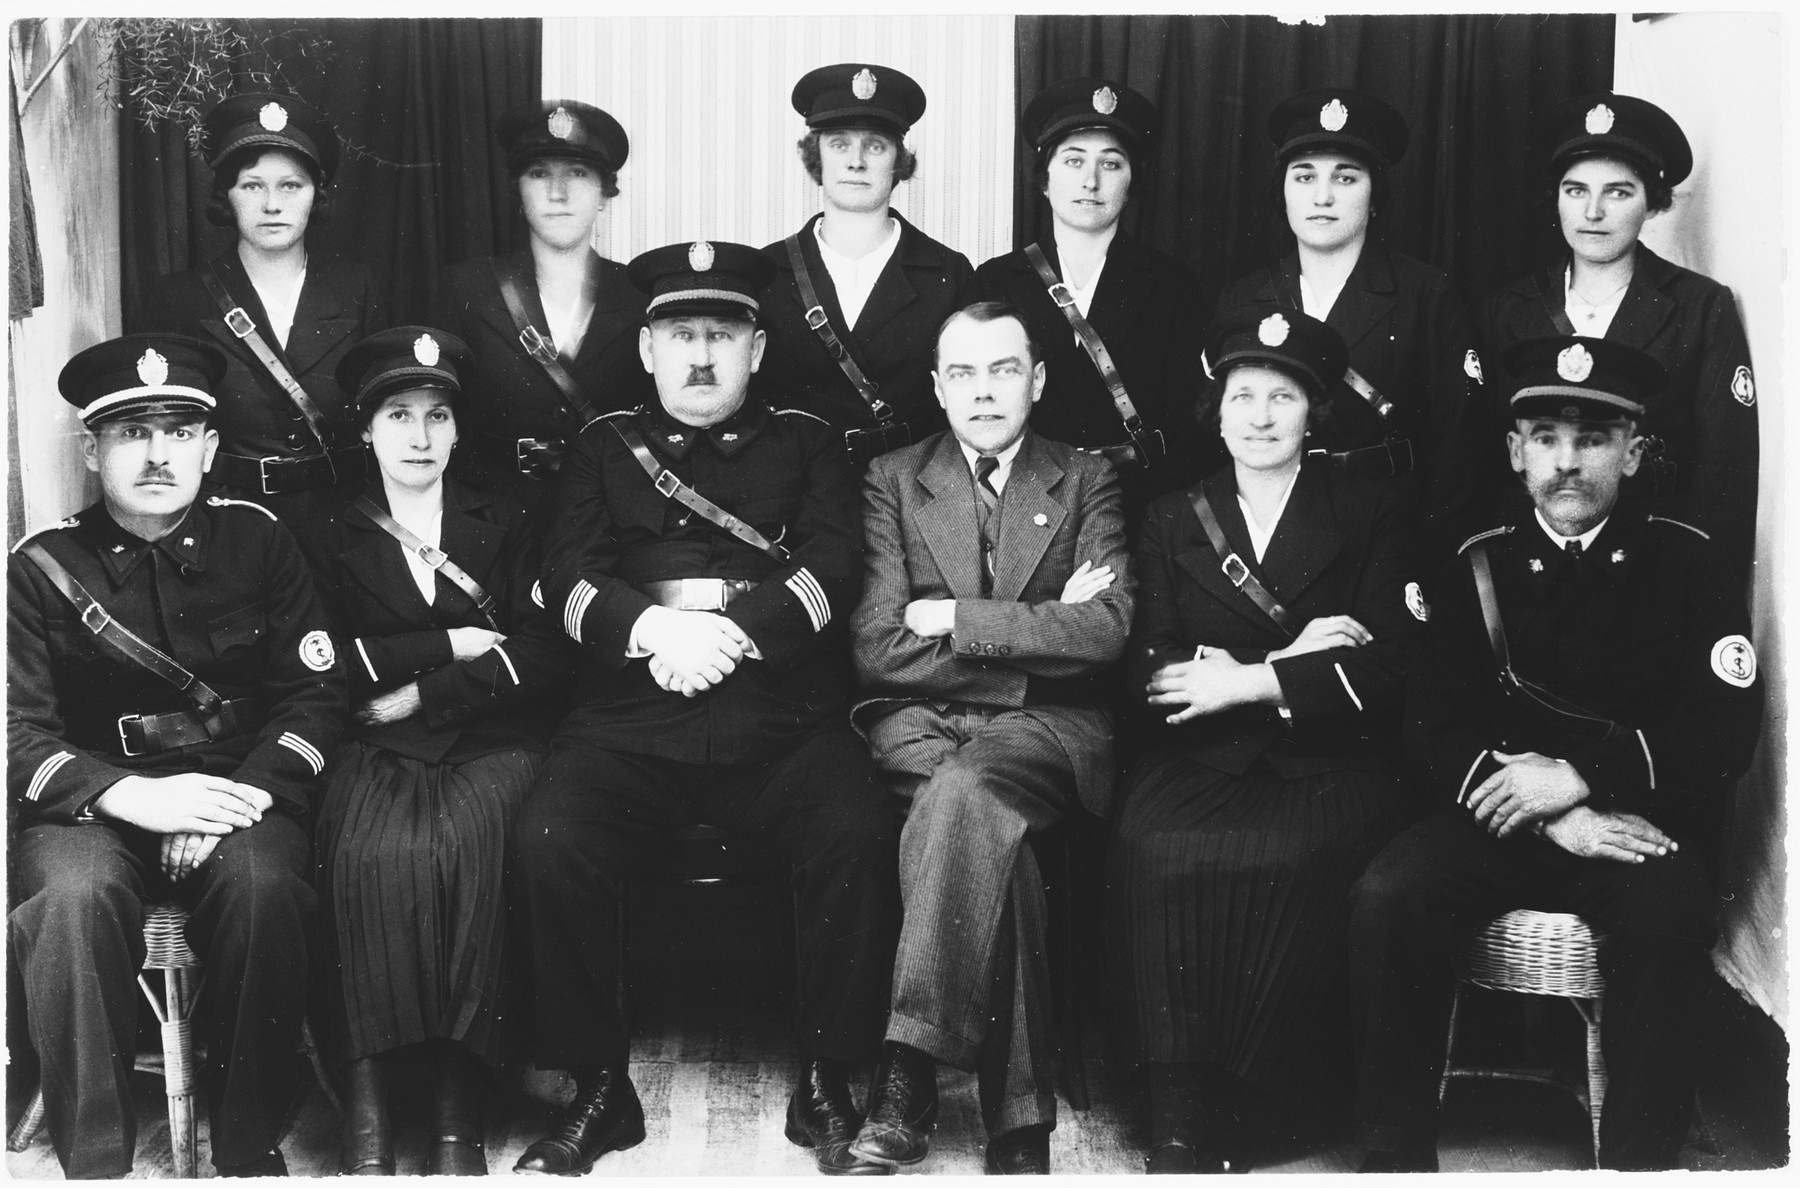 Group portrait of members of the volunteer fire brigade in Ludbreg, Croatia.  Among those pictured is Ivo Kerstner (front row, third from the left) and Ljudevit (Ludva) Vrancic (front row, fourth from the left).